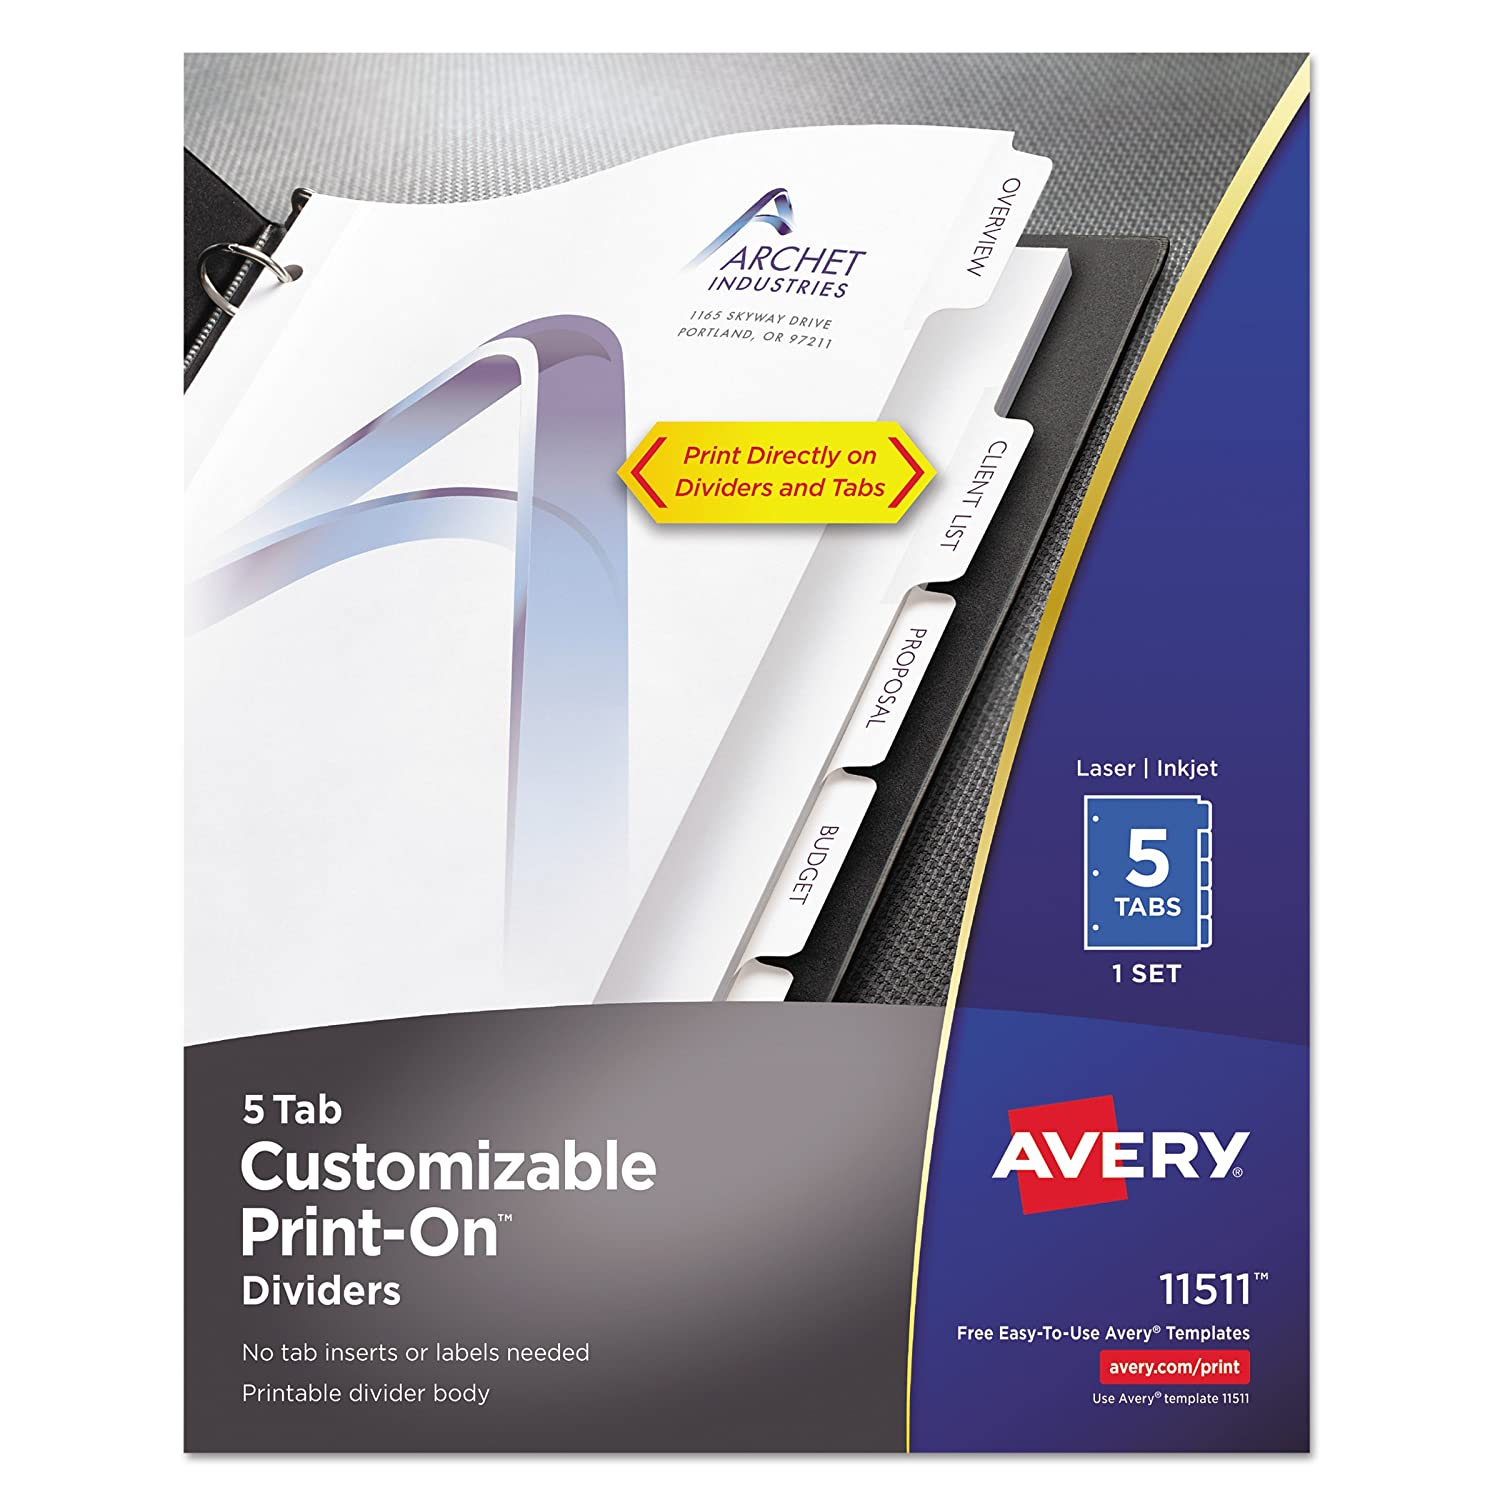 Avery Customizable Print-On Dividers -Print-on -8.50-Inch x11-Inch -5/Set -White Divider S.P. Richards CA 11511